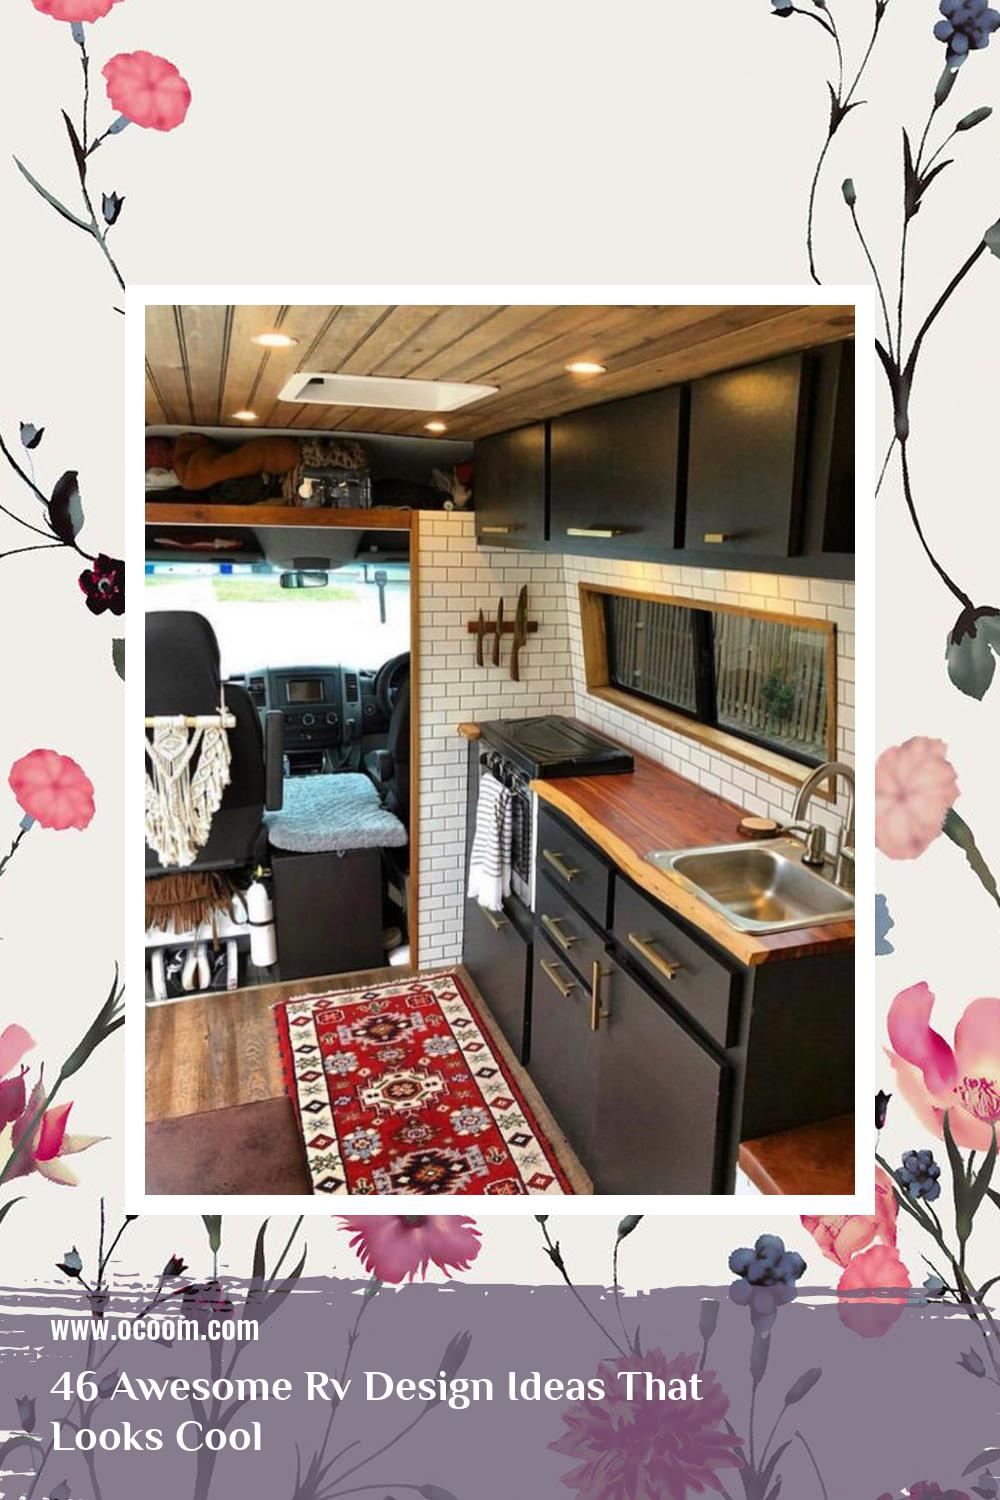 46 Awesome Rv Design Ideas That Looks Cool 18